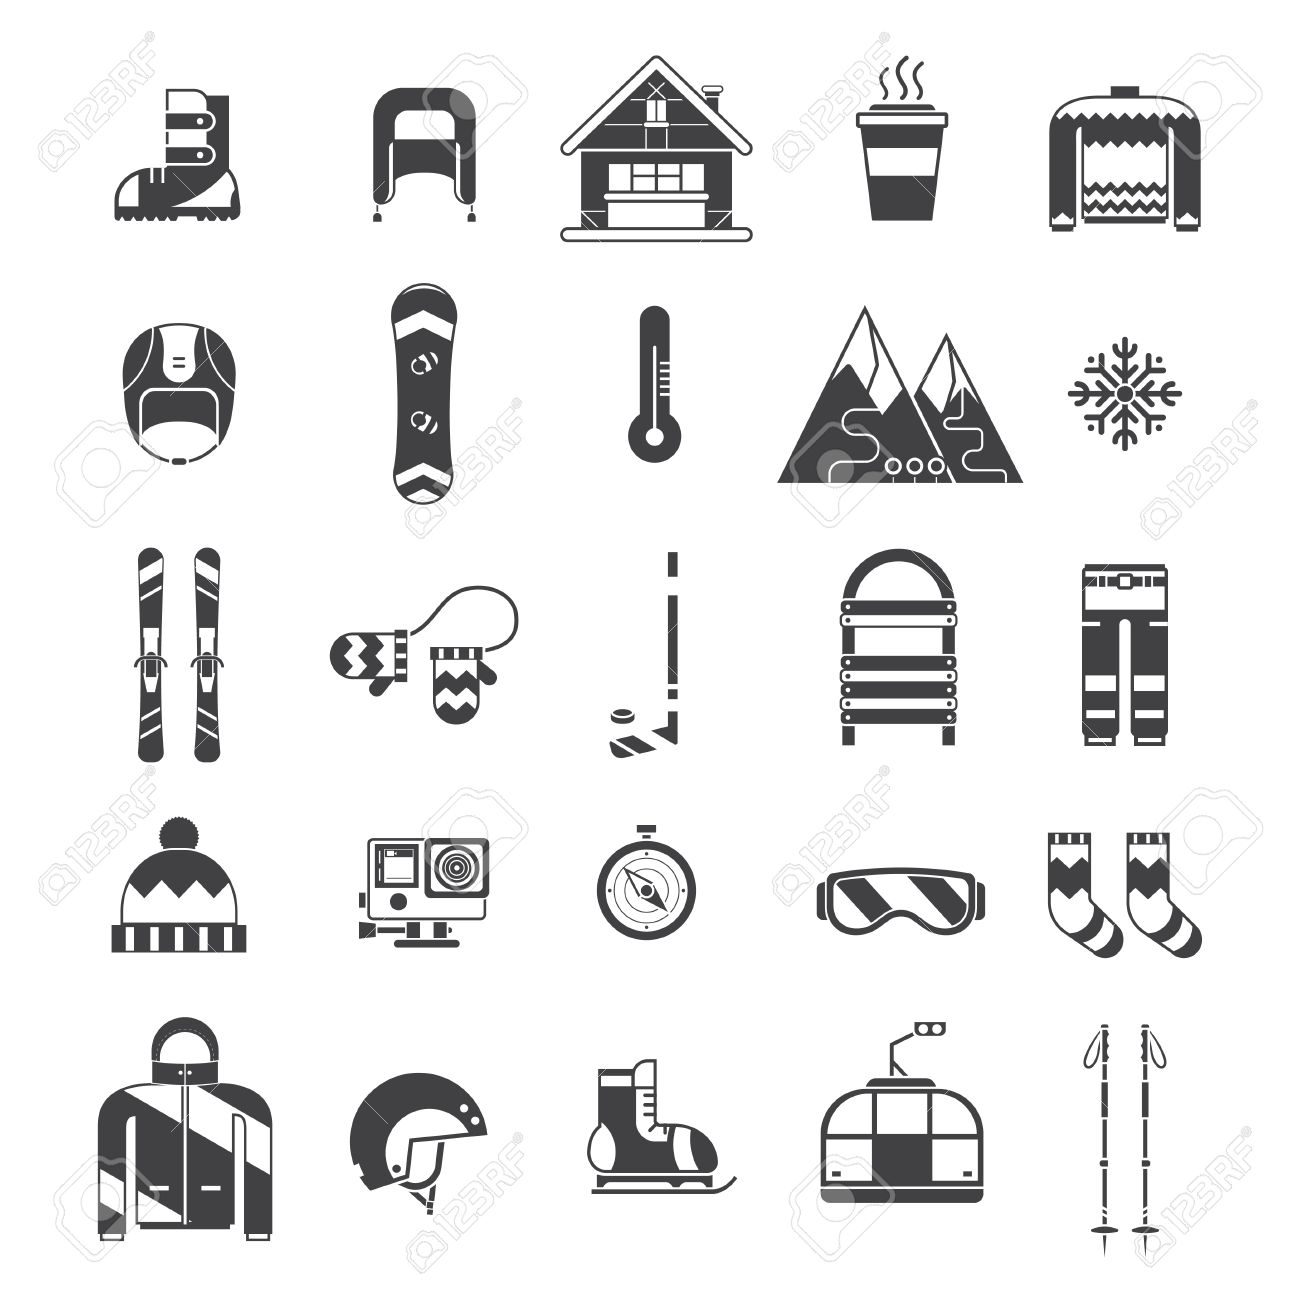 3012a5b9eb08 Winter sports and fun outline icon collection. Winter resort pictogram set.  Outdoor winter activity lifestyle concept icons. Snowboard suit